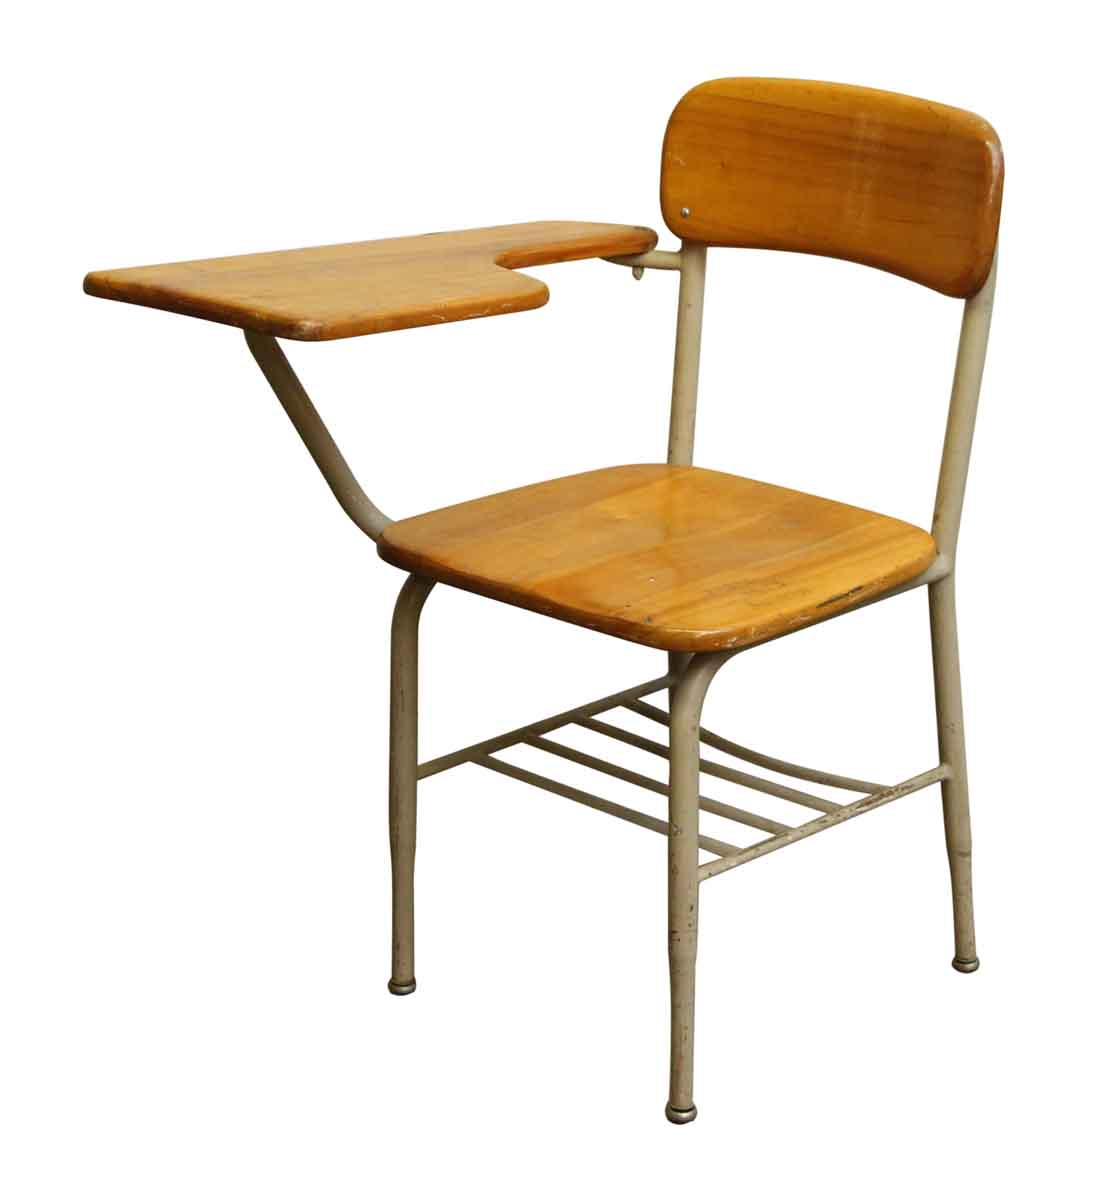 school desk chairs chair gym exercise routine antique heywood wakefield olde good things